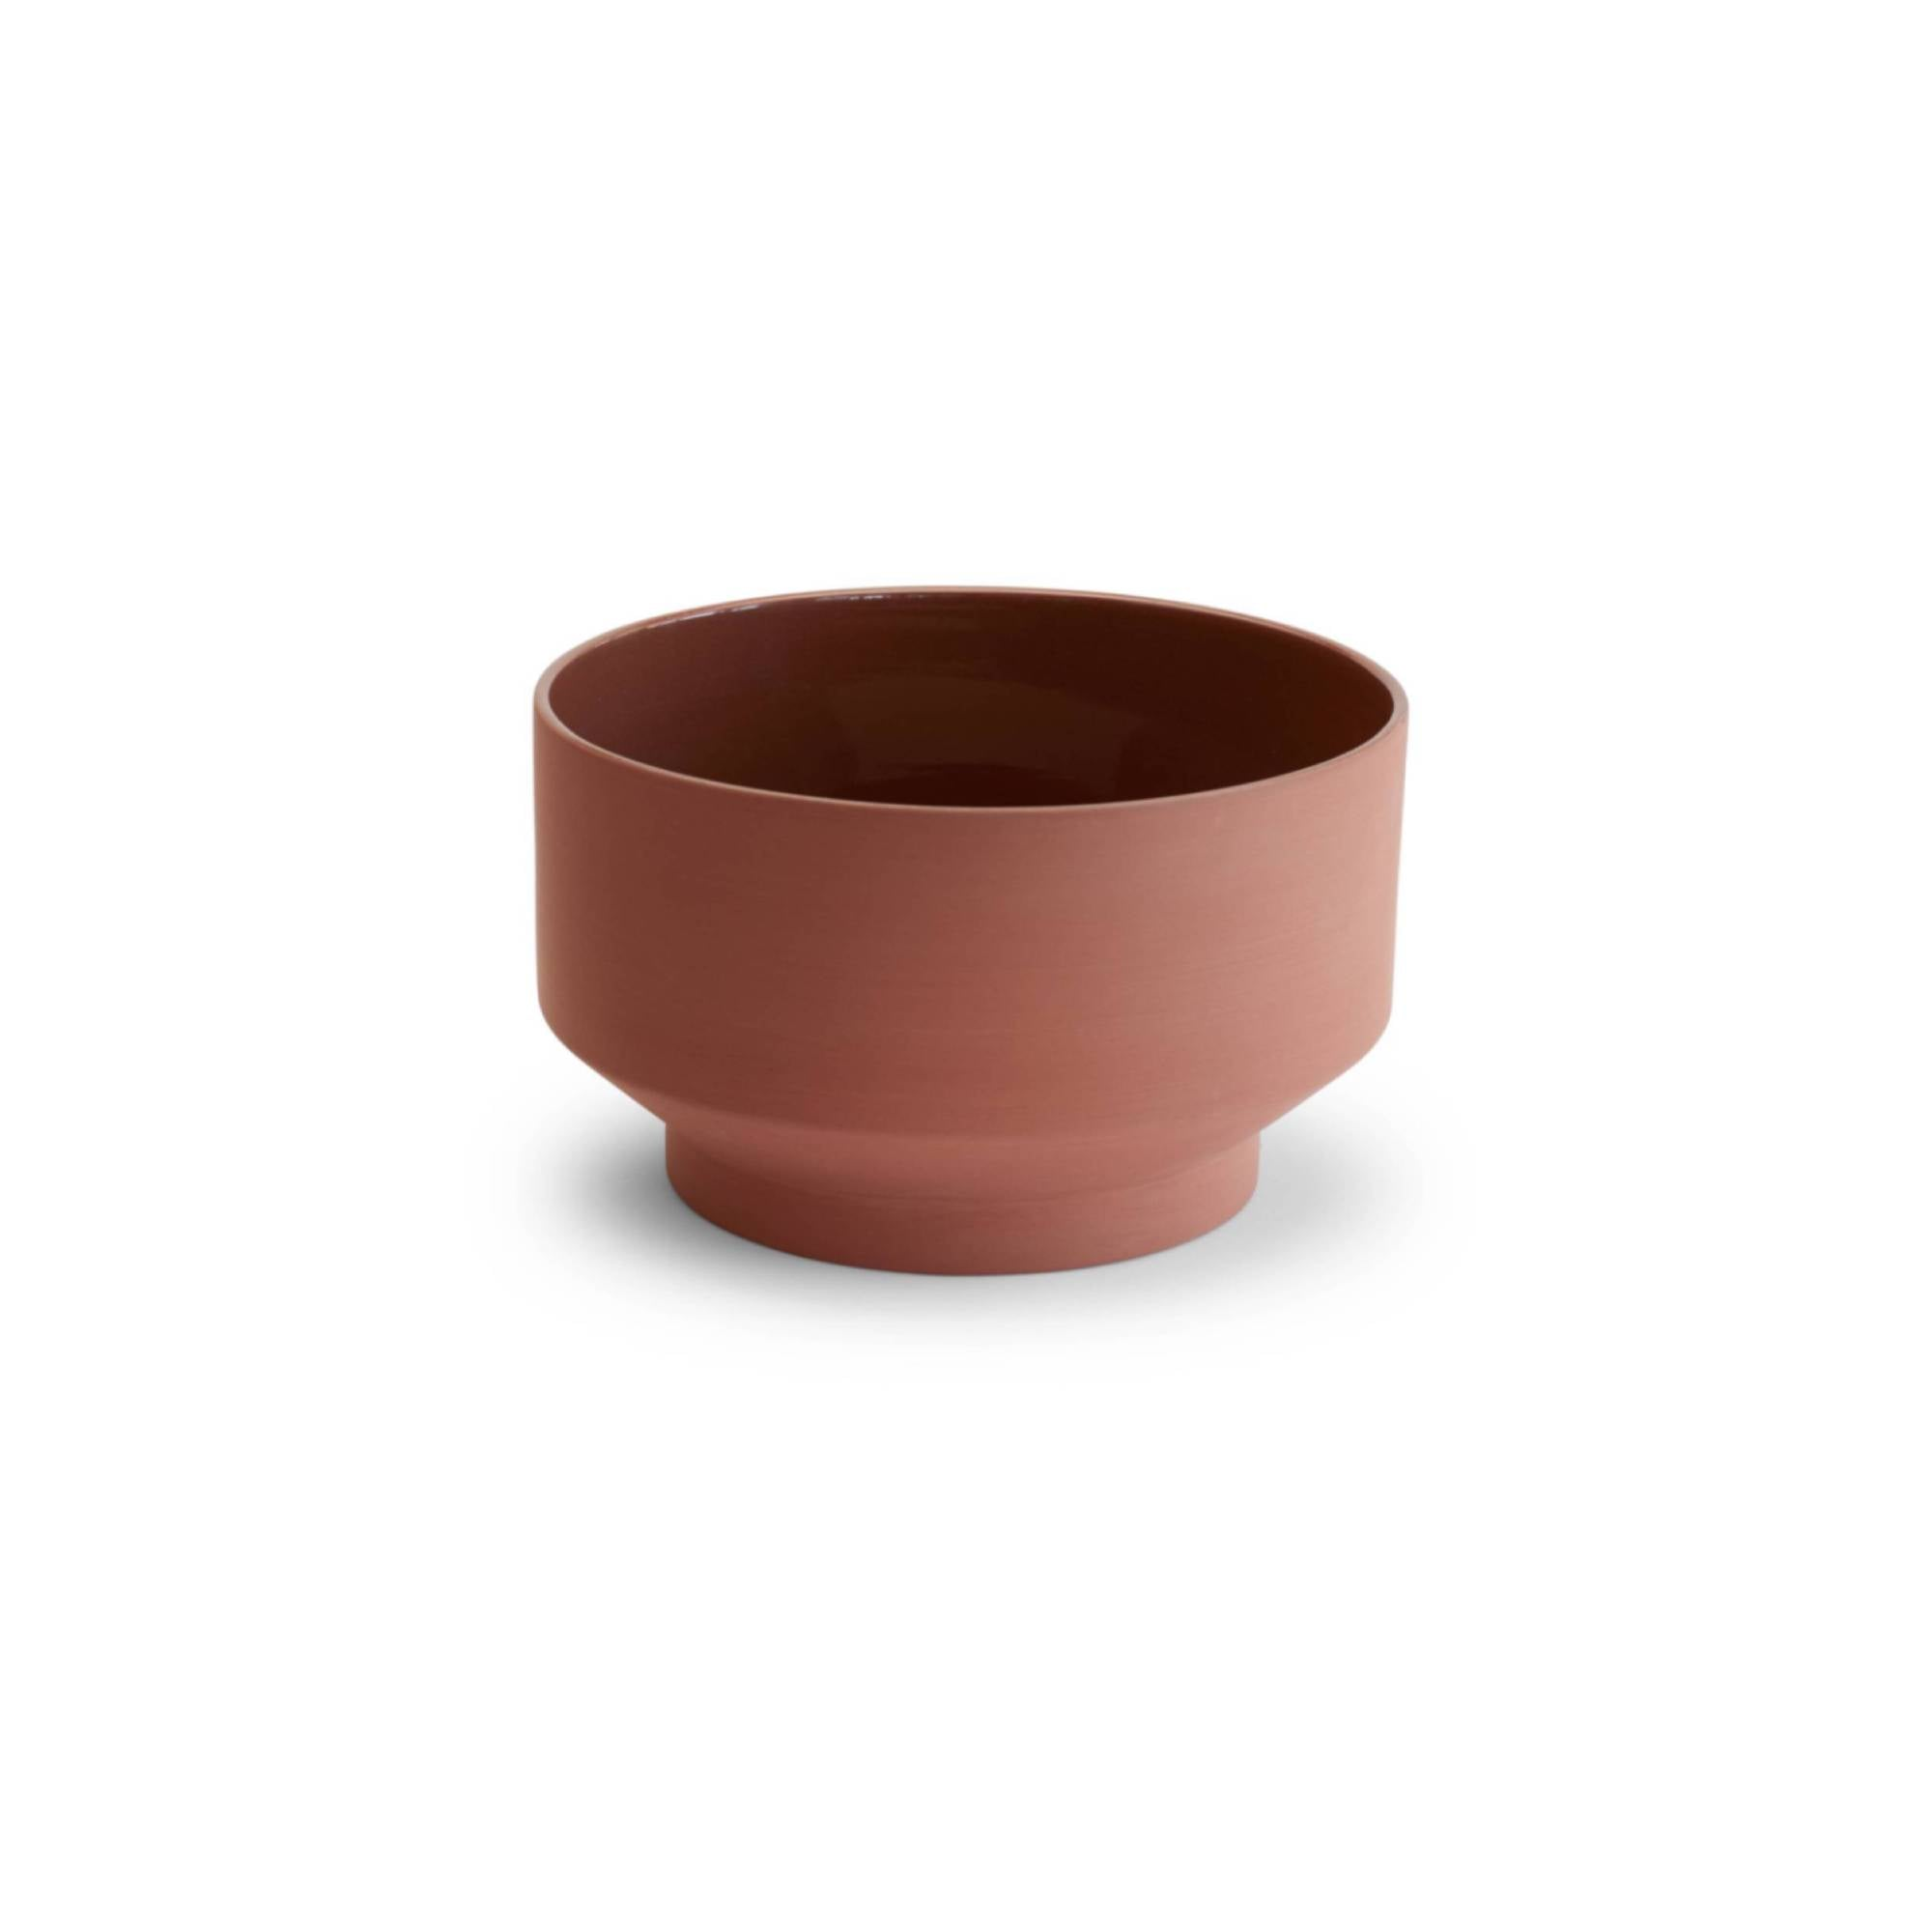 Edge Bowl: Large - 8.6